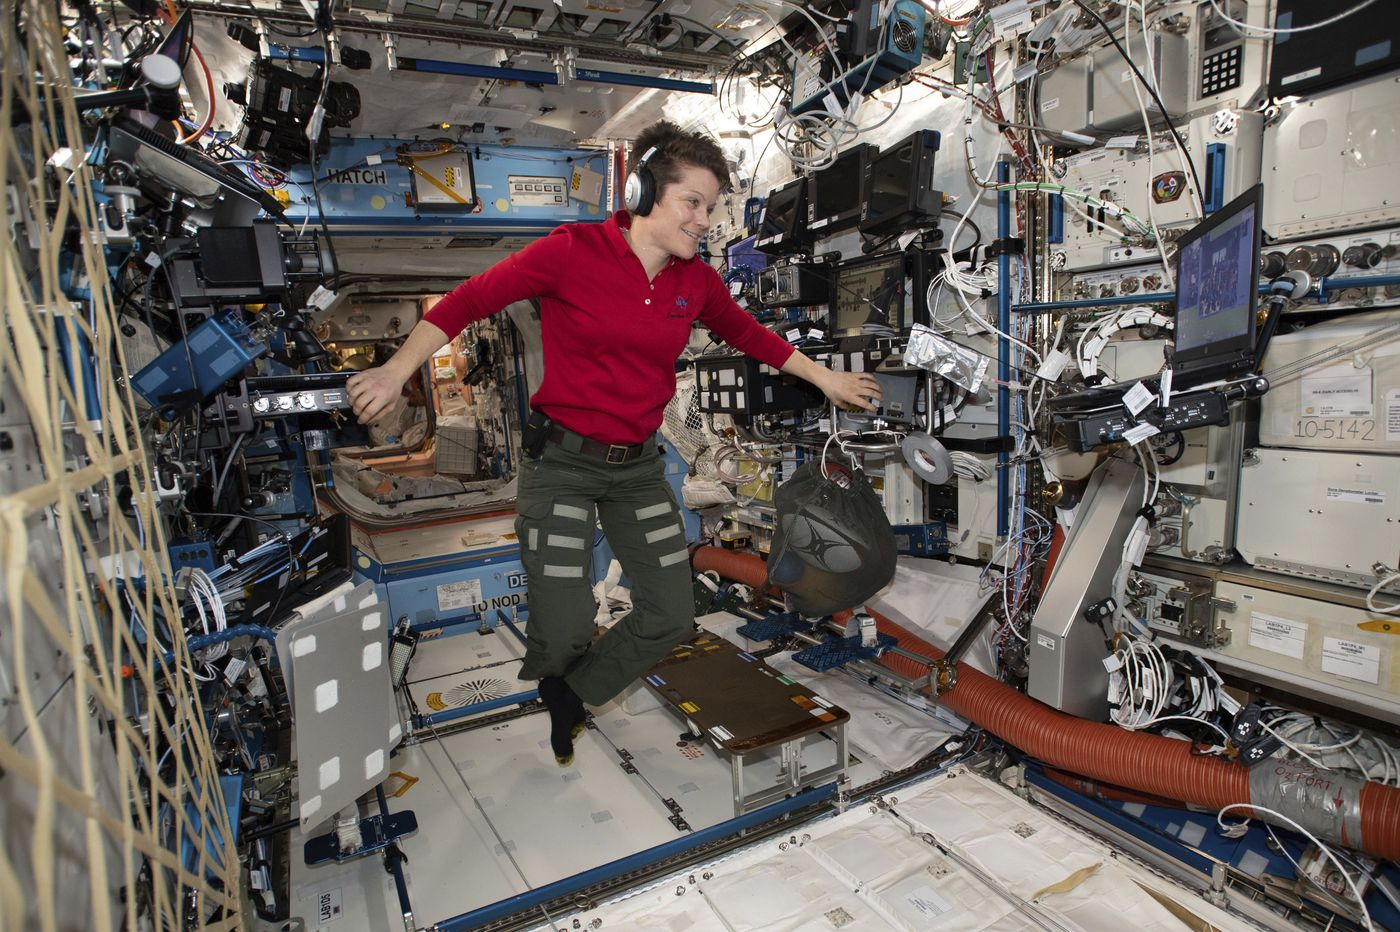 NASA nixes 1st all-female spacewalk due to suit-sizing issue